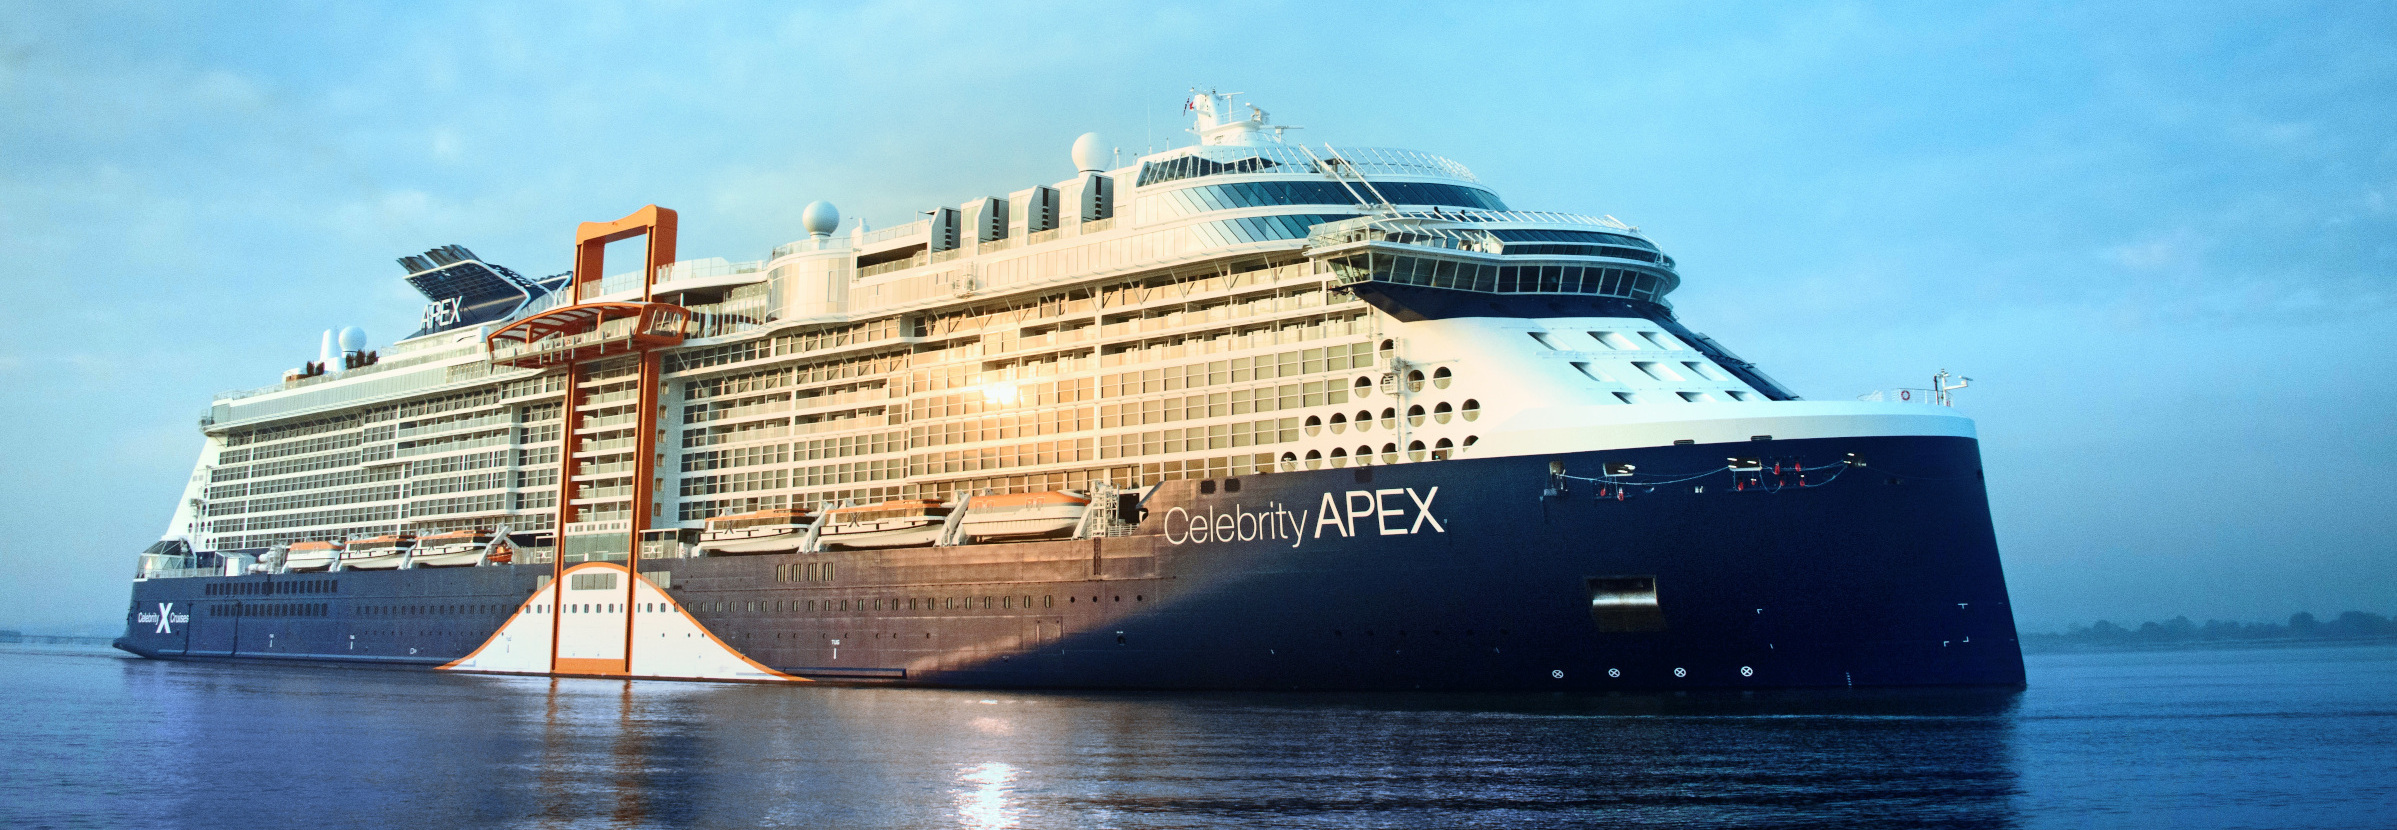 Turkey & Greece Cruise on Celebrity Apex